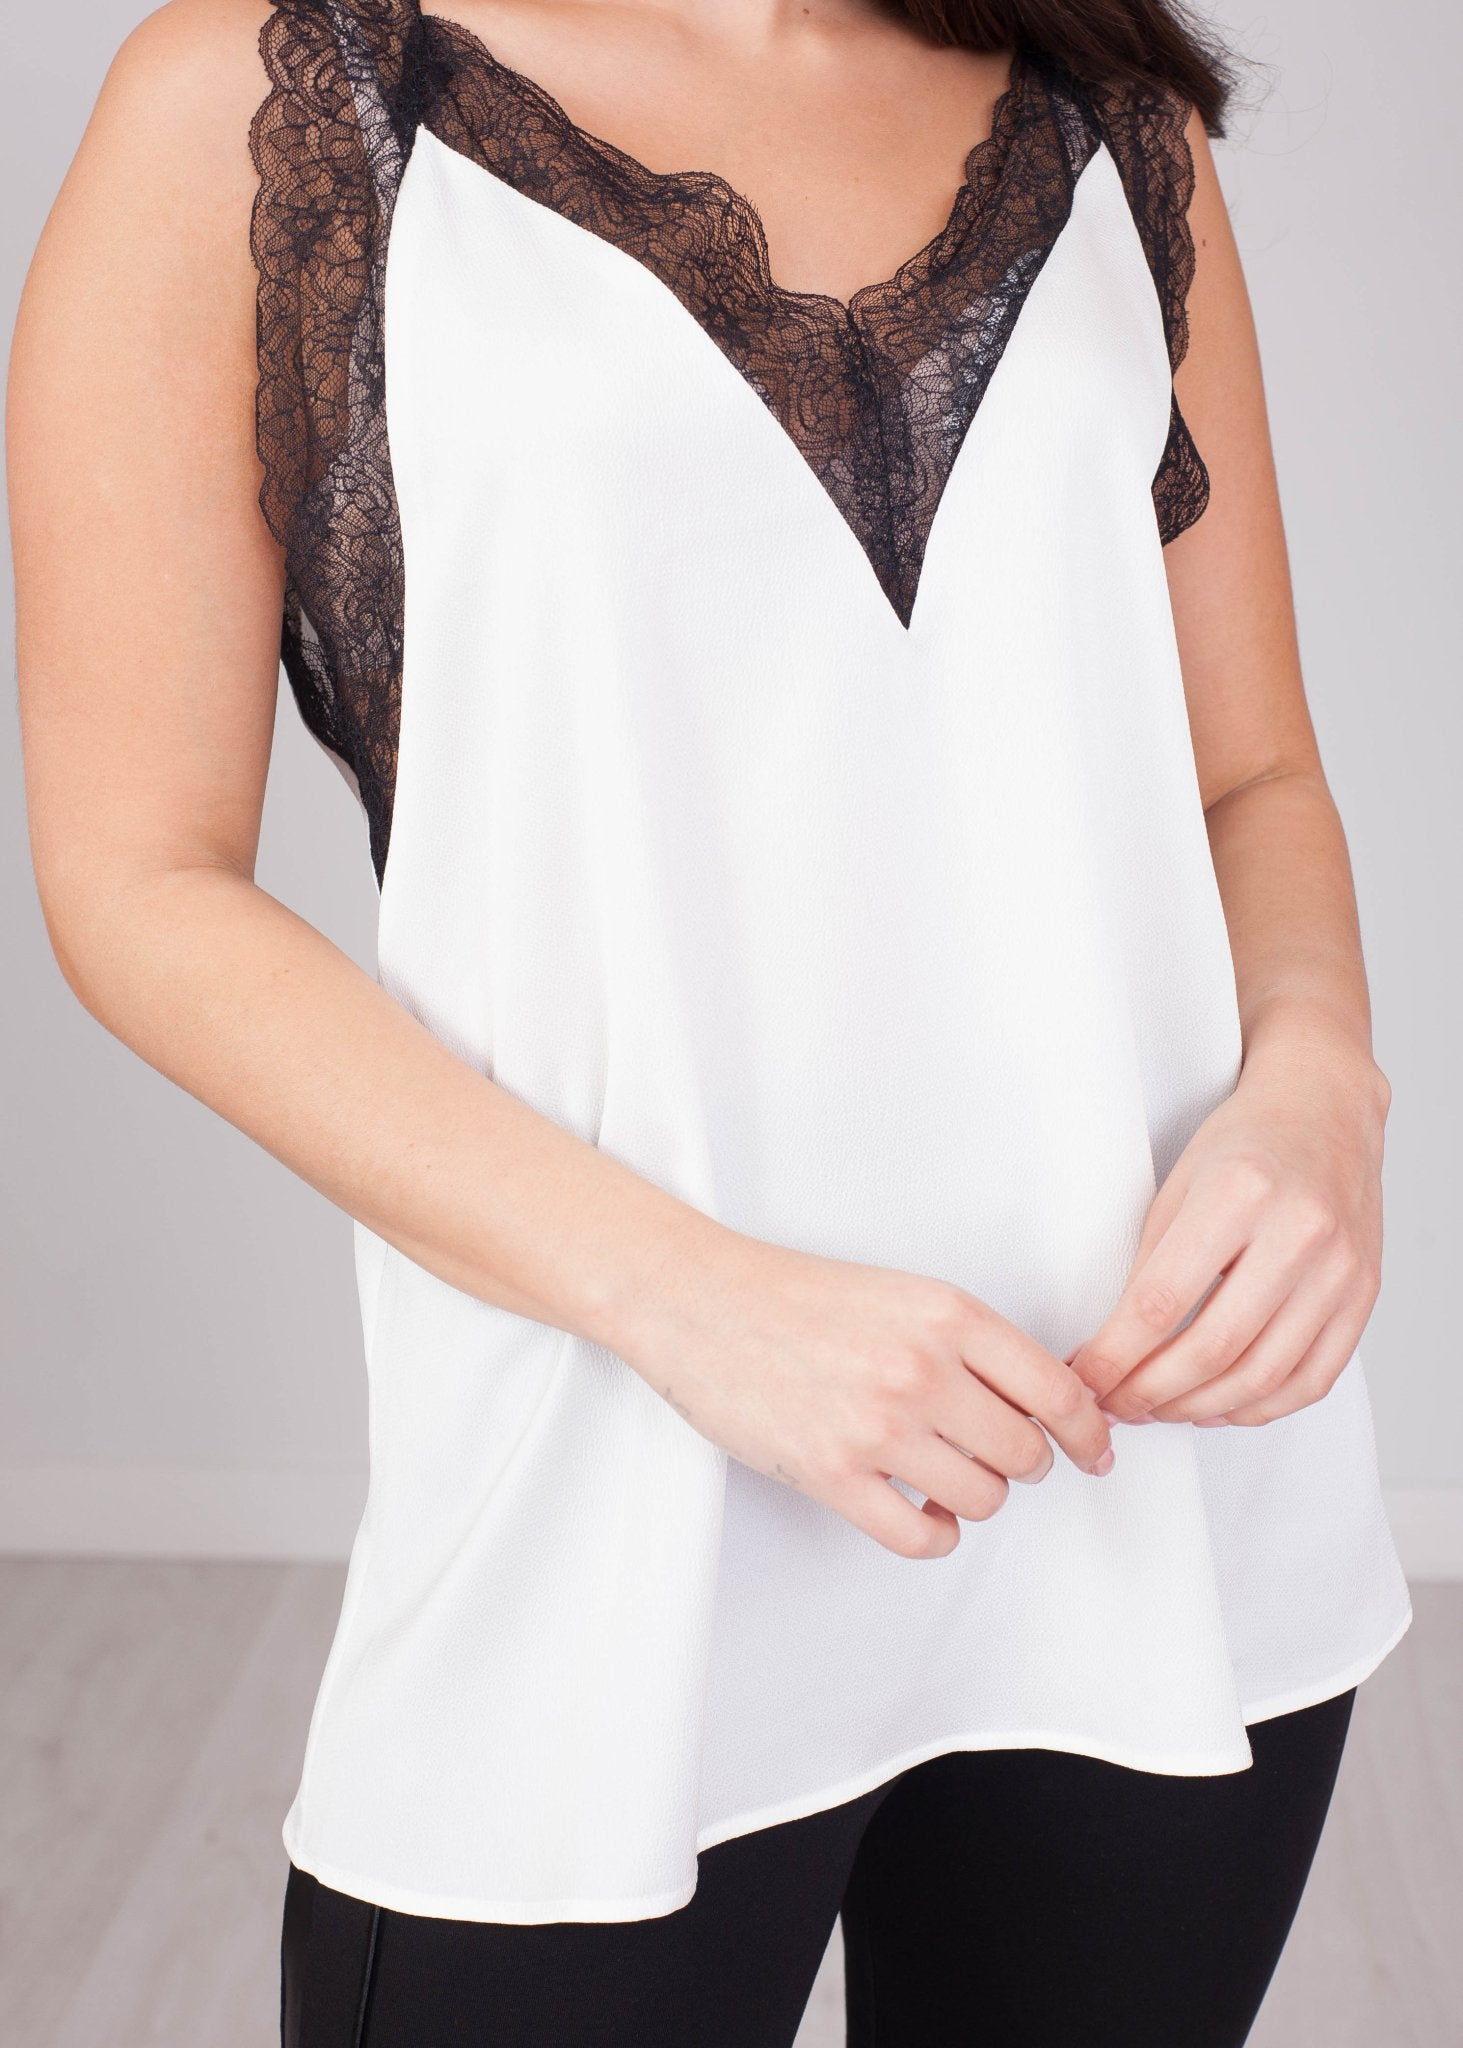 Sophia White & Black Lace Cami - The Walk in Wardrobe